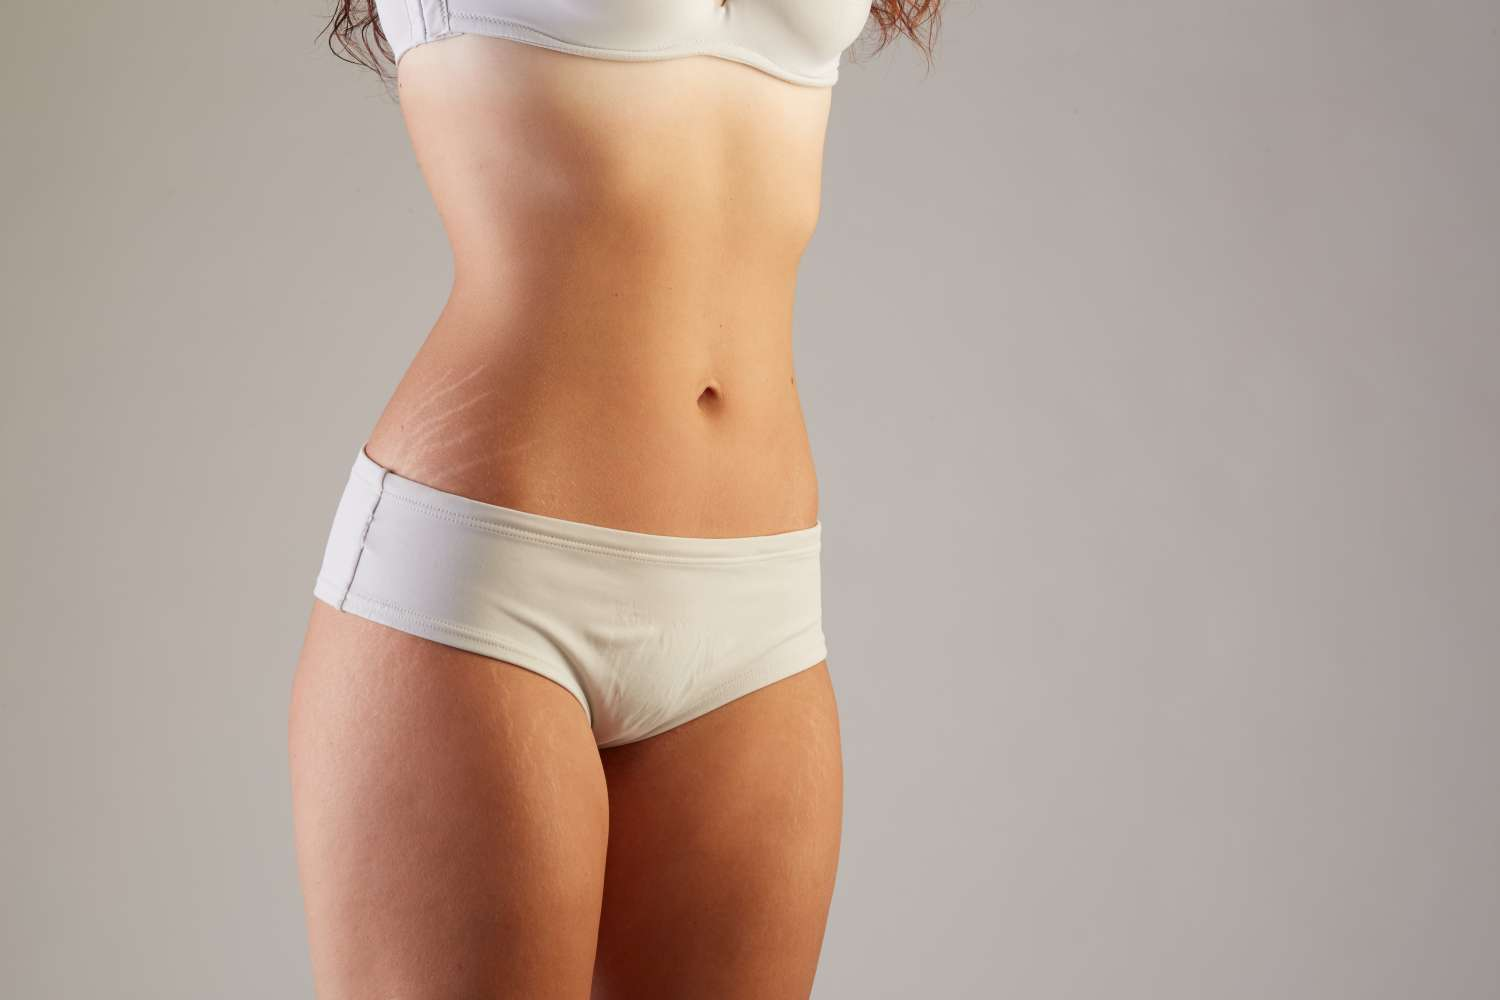 Stretch marks after a tummy tuck